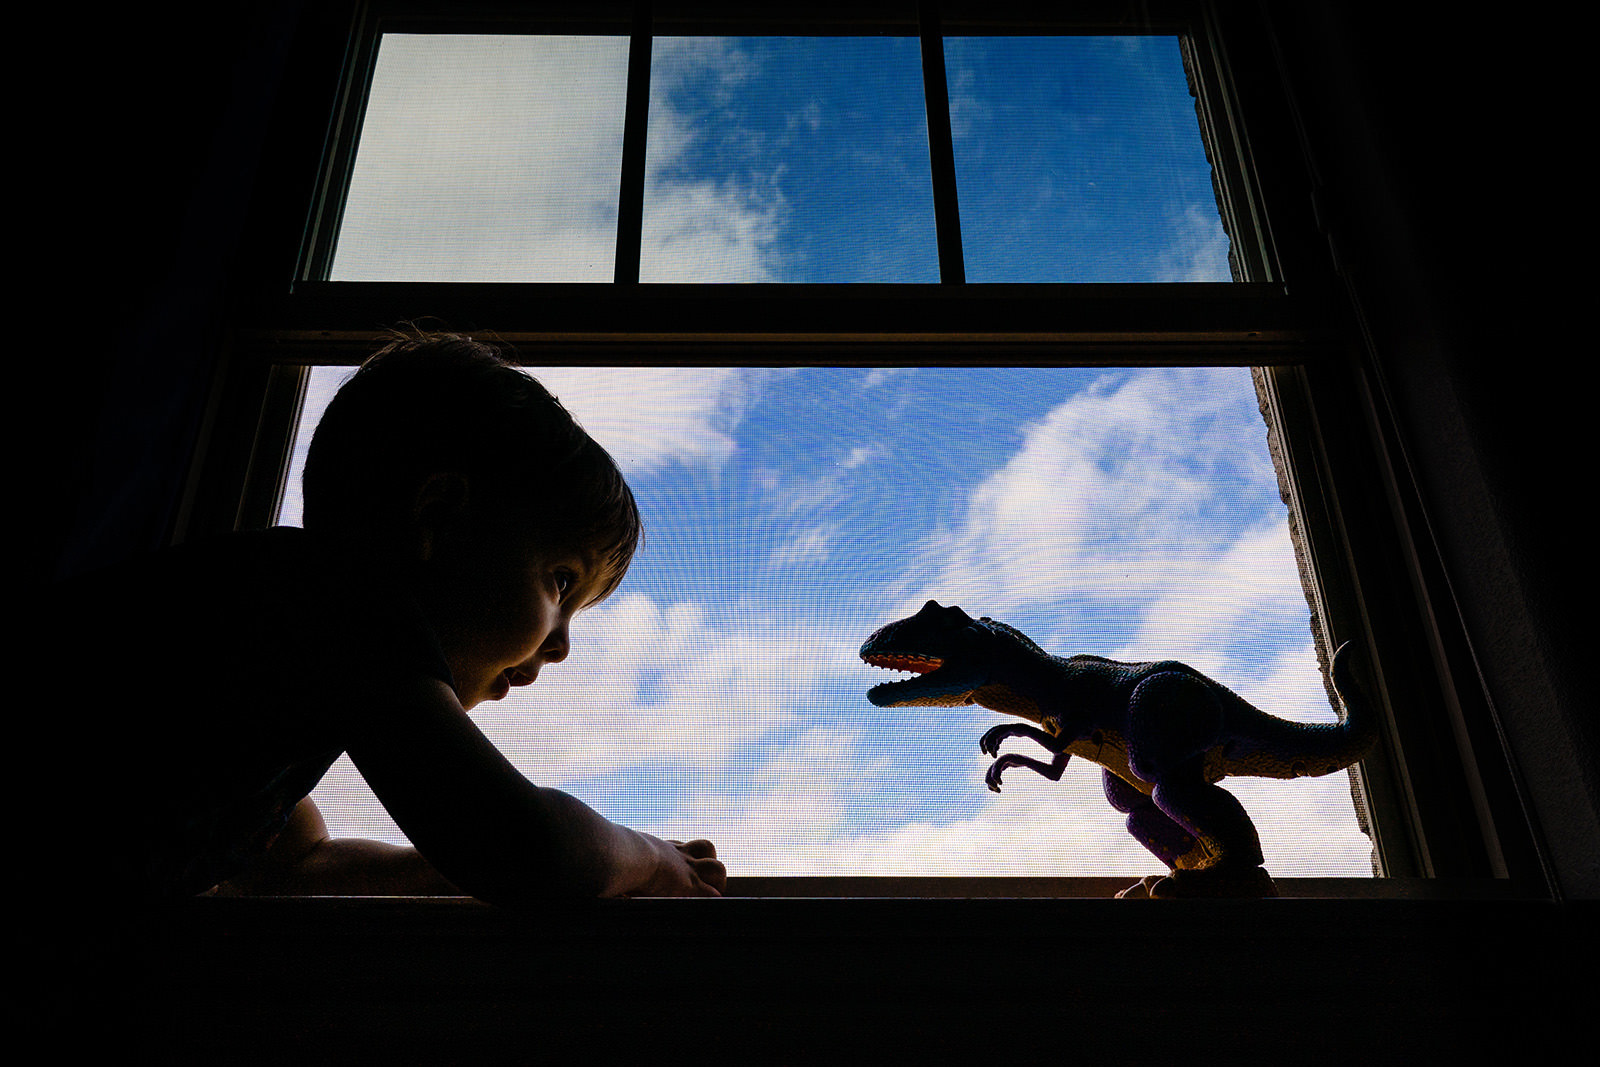 Boy plays with dinosaur toy near window with clear blue sky outside